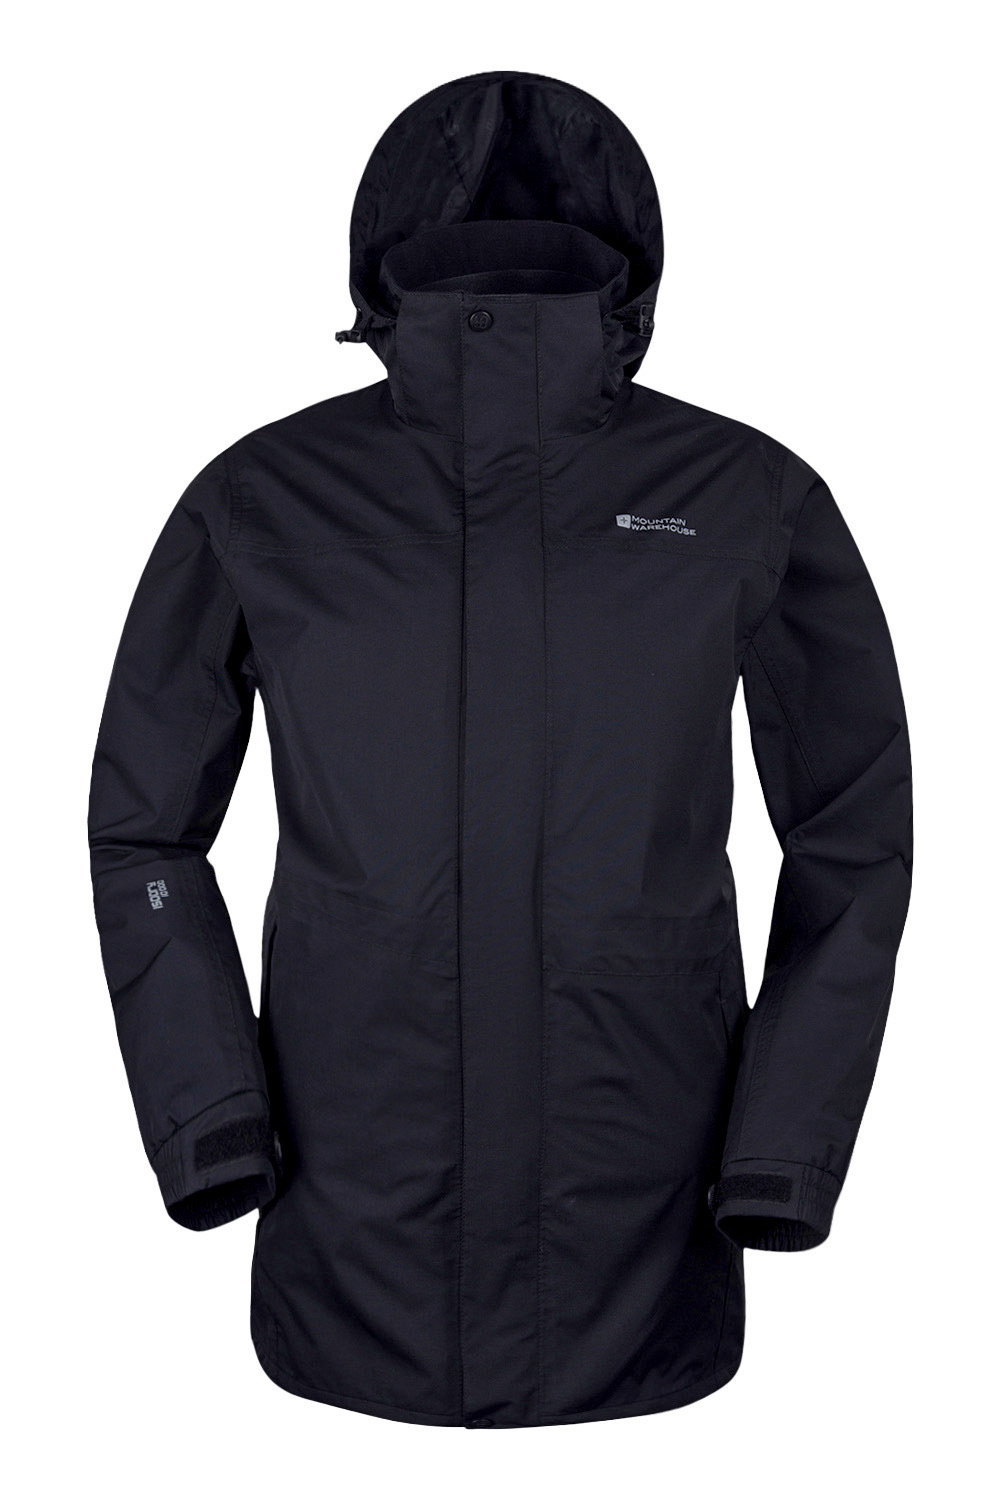 Getting waterproof coats for rainy season - storiestrending.com